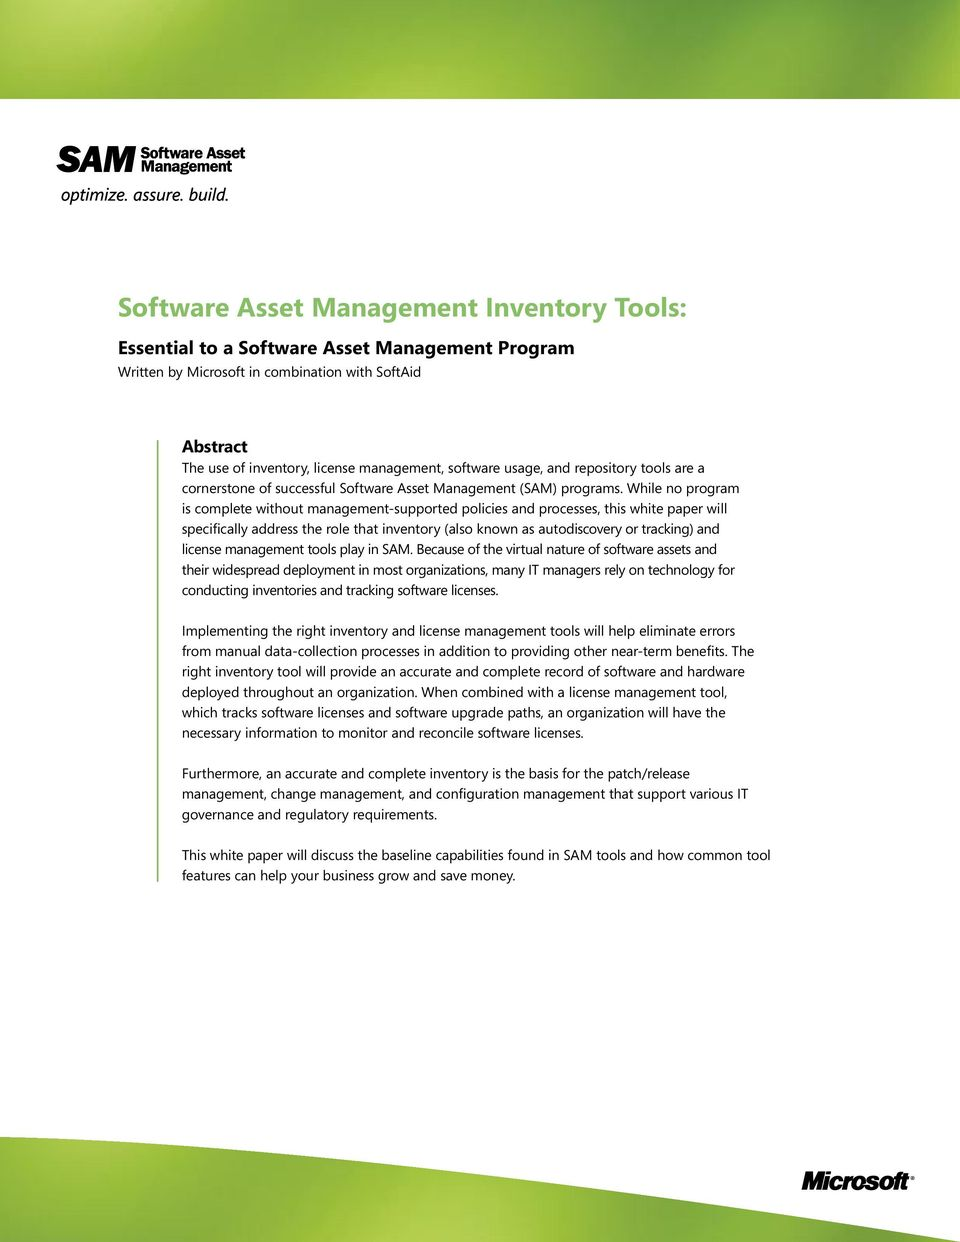 While no program is complete without management-supported policies and processes, this white paper will specifically address the role that inventory (also known as autodiscovery or tracking) and